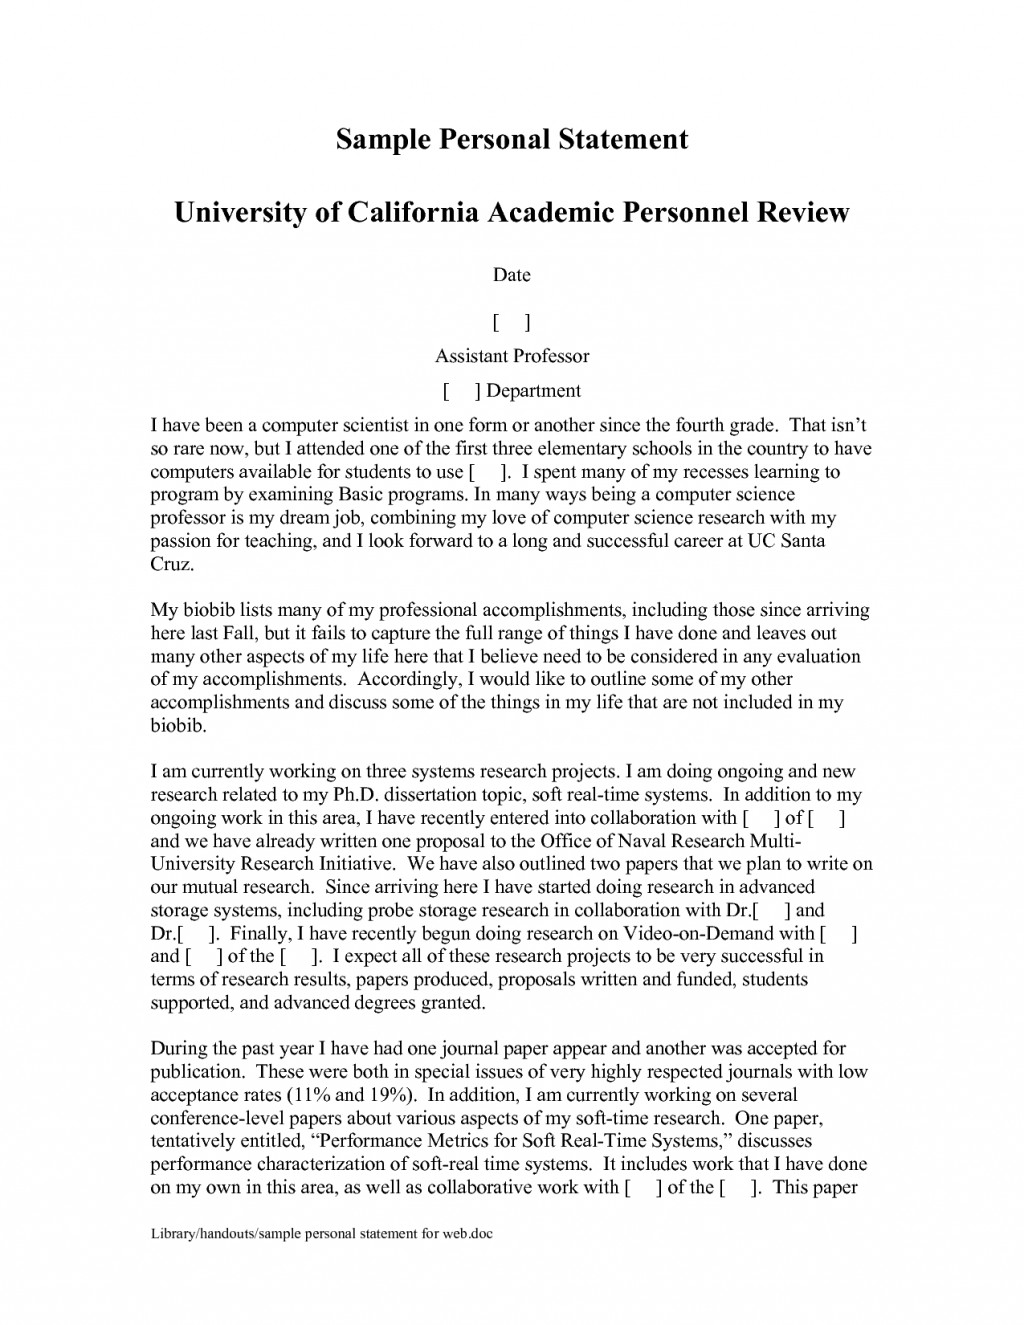 014 Essay Example Harvard Business School Examples Image Ideas Template Sample Essays Mba Entrance Writing Unit Graduate Personal Formidable Word Limit Question 2018 Large